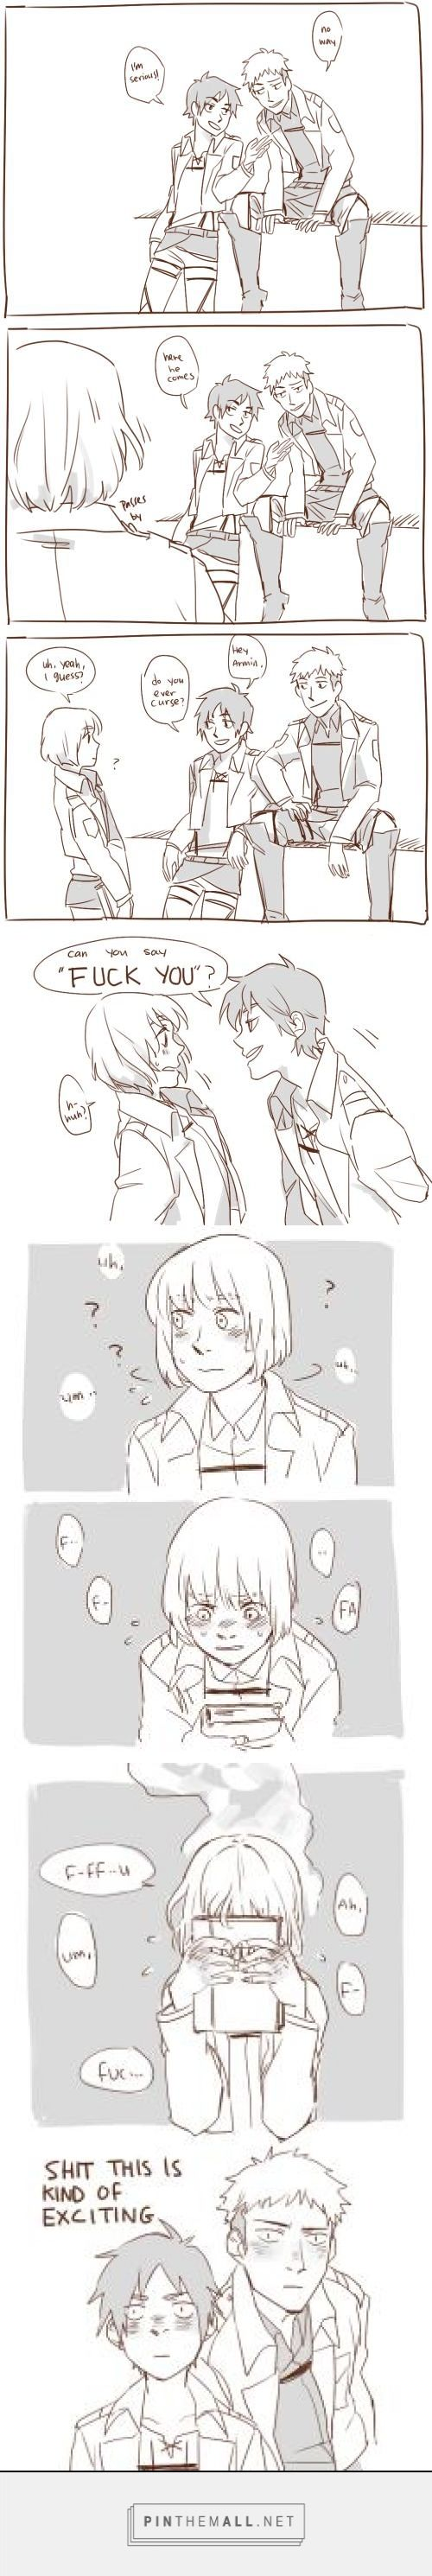 Eren tries to get Armin to curse (Attack on Titan) 1/2 Source: http://mirrorshards.tumblr.com/post/61273256063/i-came-back-with-more